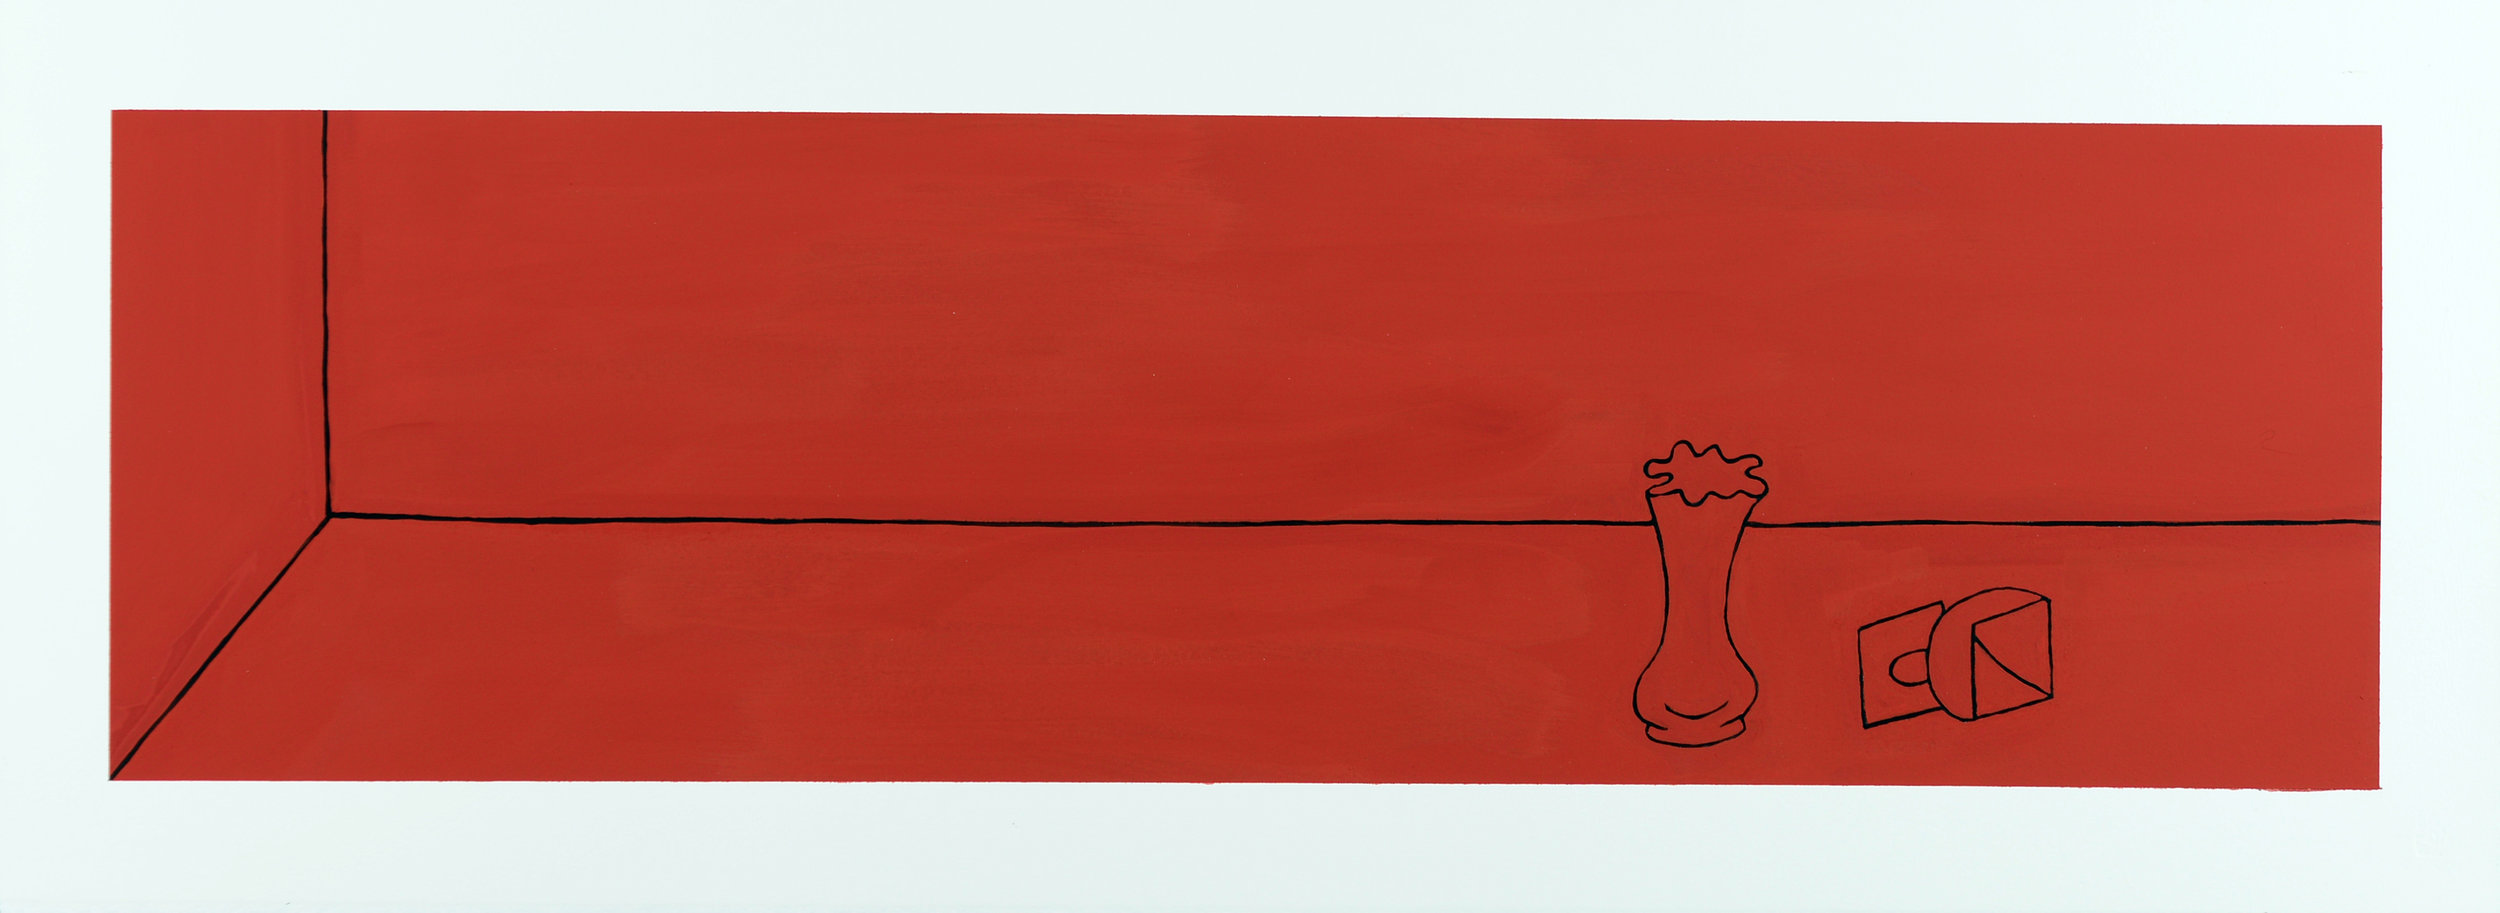 Monochrome Collective : Gary Kret : Would the Underworld be Red Series #1 : Casein on Paper : 8 x 27.5 : $2,600.jpg